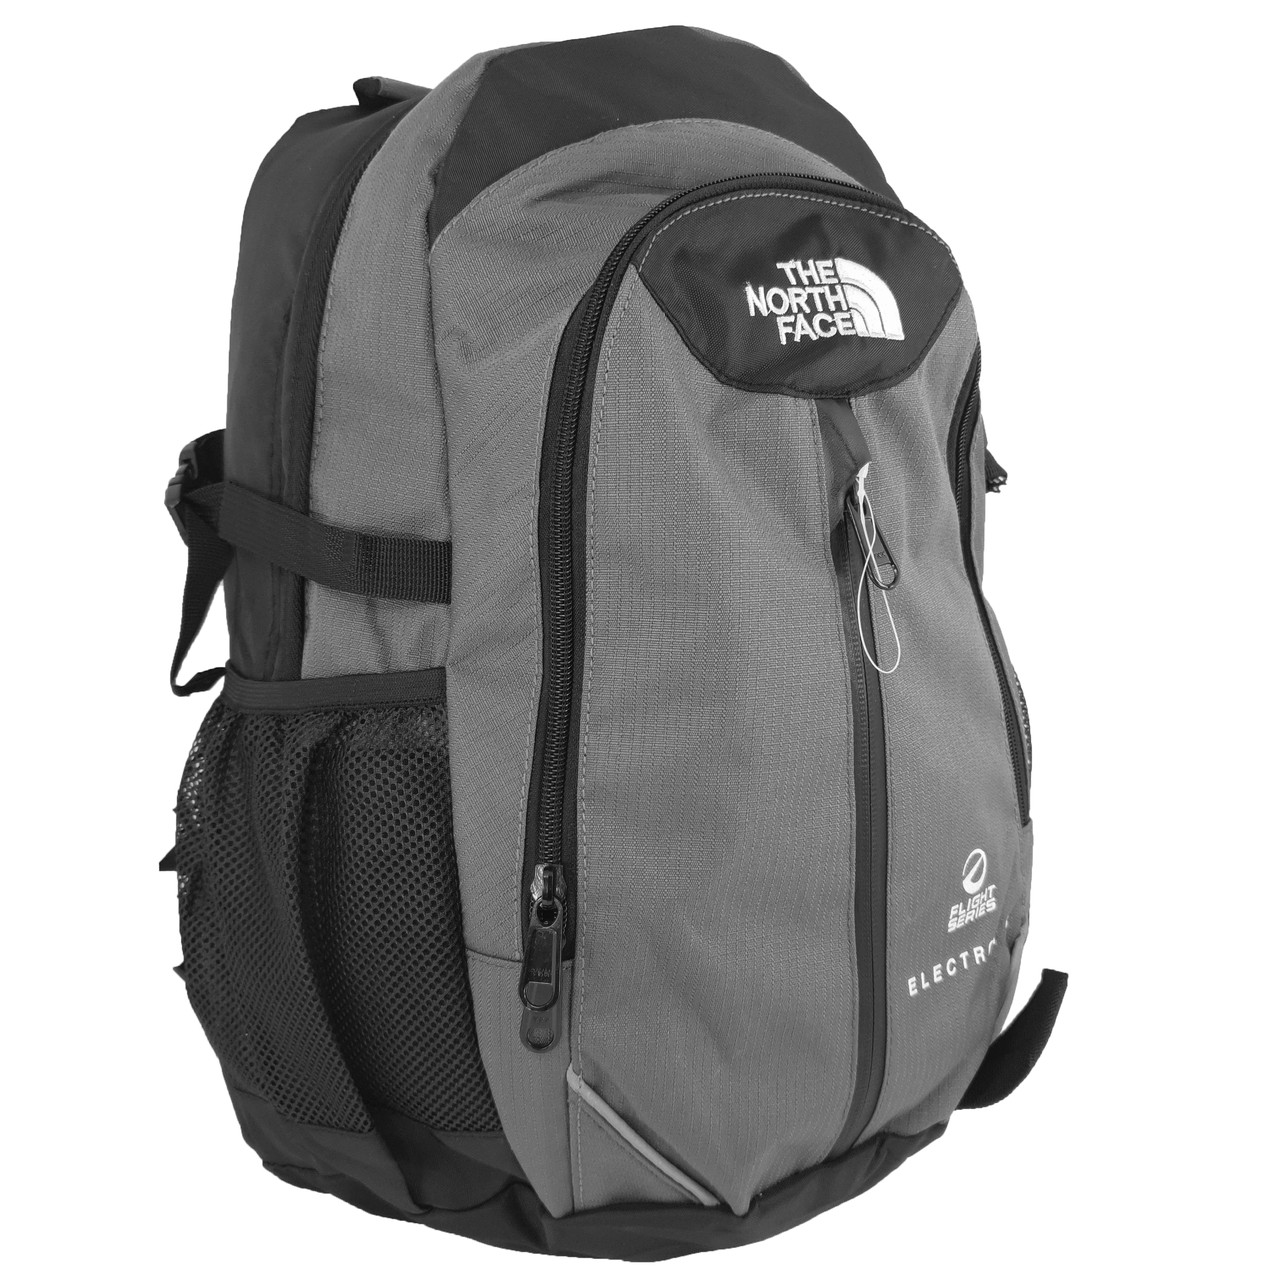 Рюкзак The North Face 25л